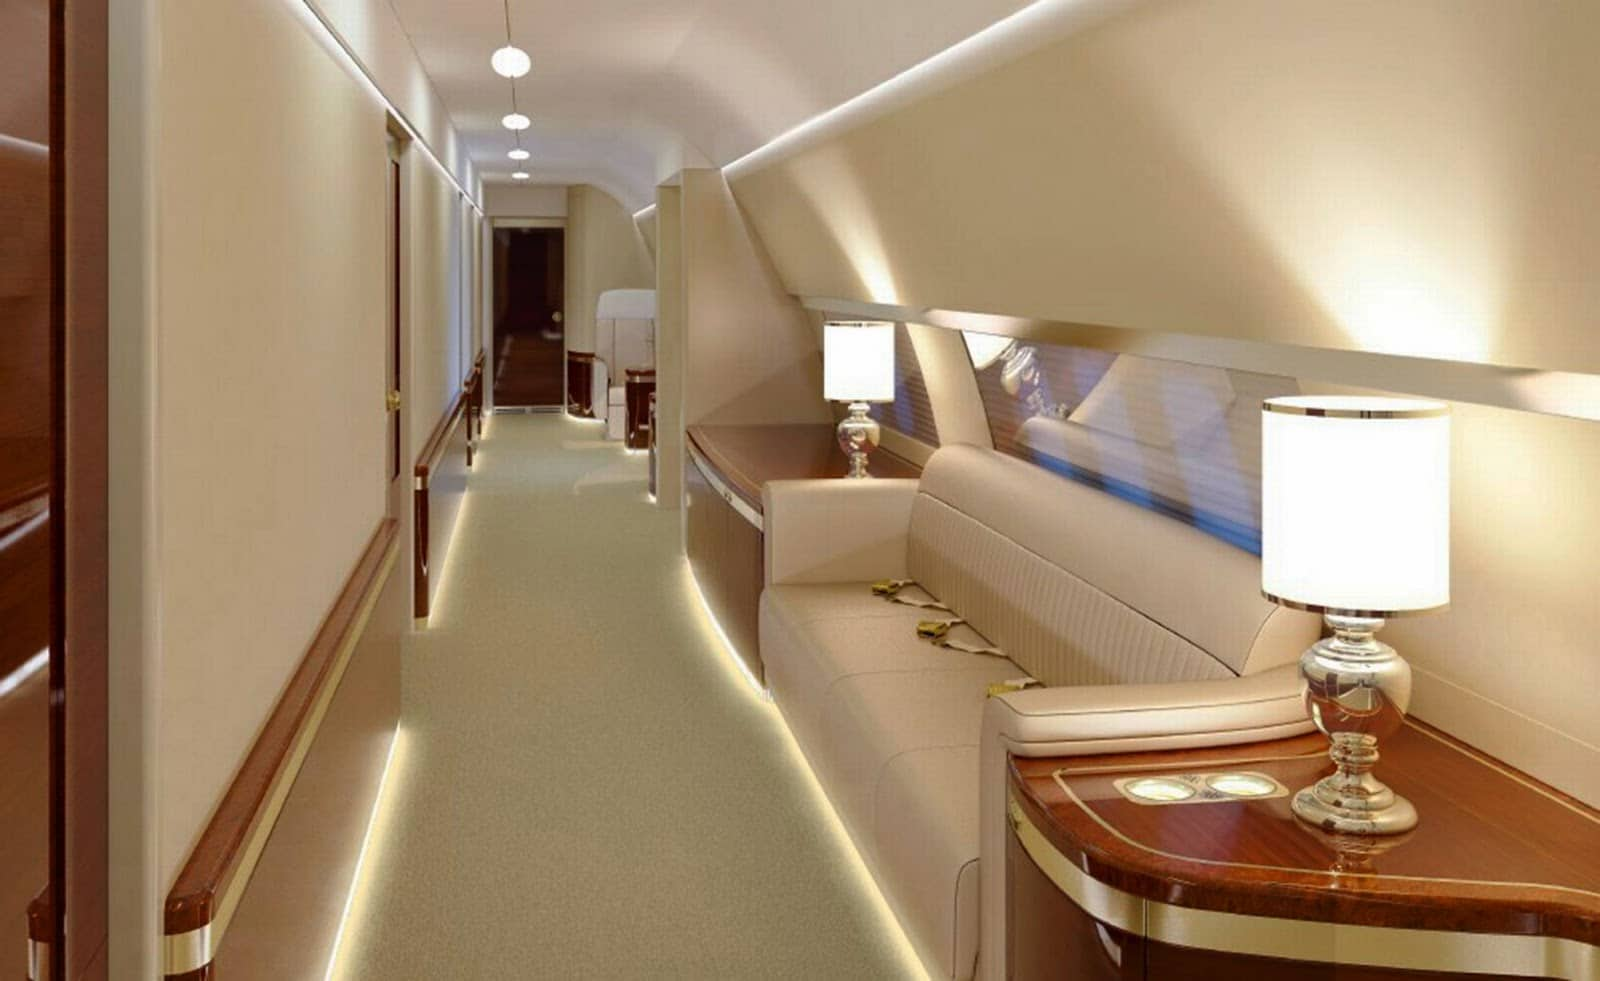 The interior of the Tinubu's Bombardier Challenger